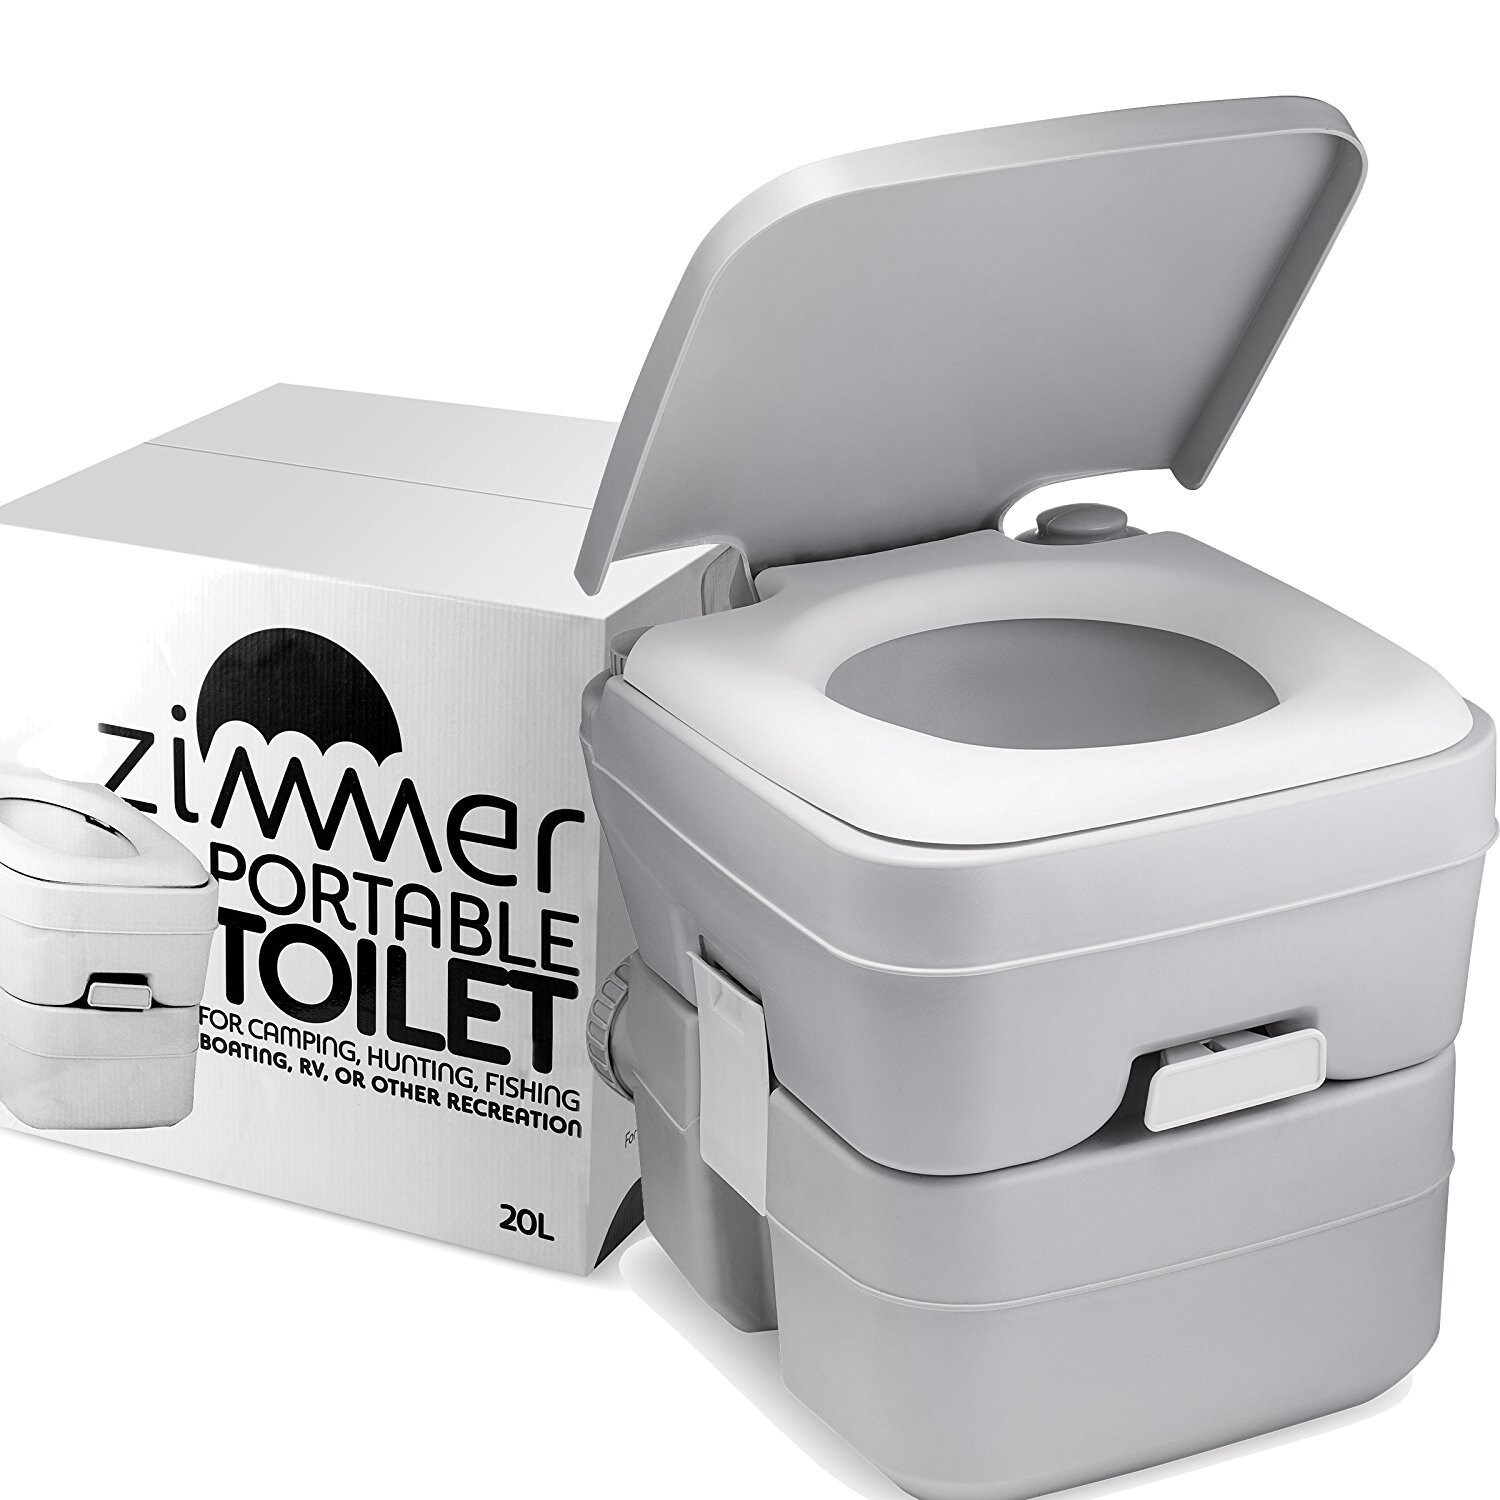 Camping Toilet Comfort Portable Toilet 5 Gallon Capacity Rv Toilet With Detachable Tanks Easy To Use For Camping Toilet Or Travel